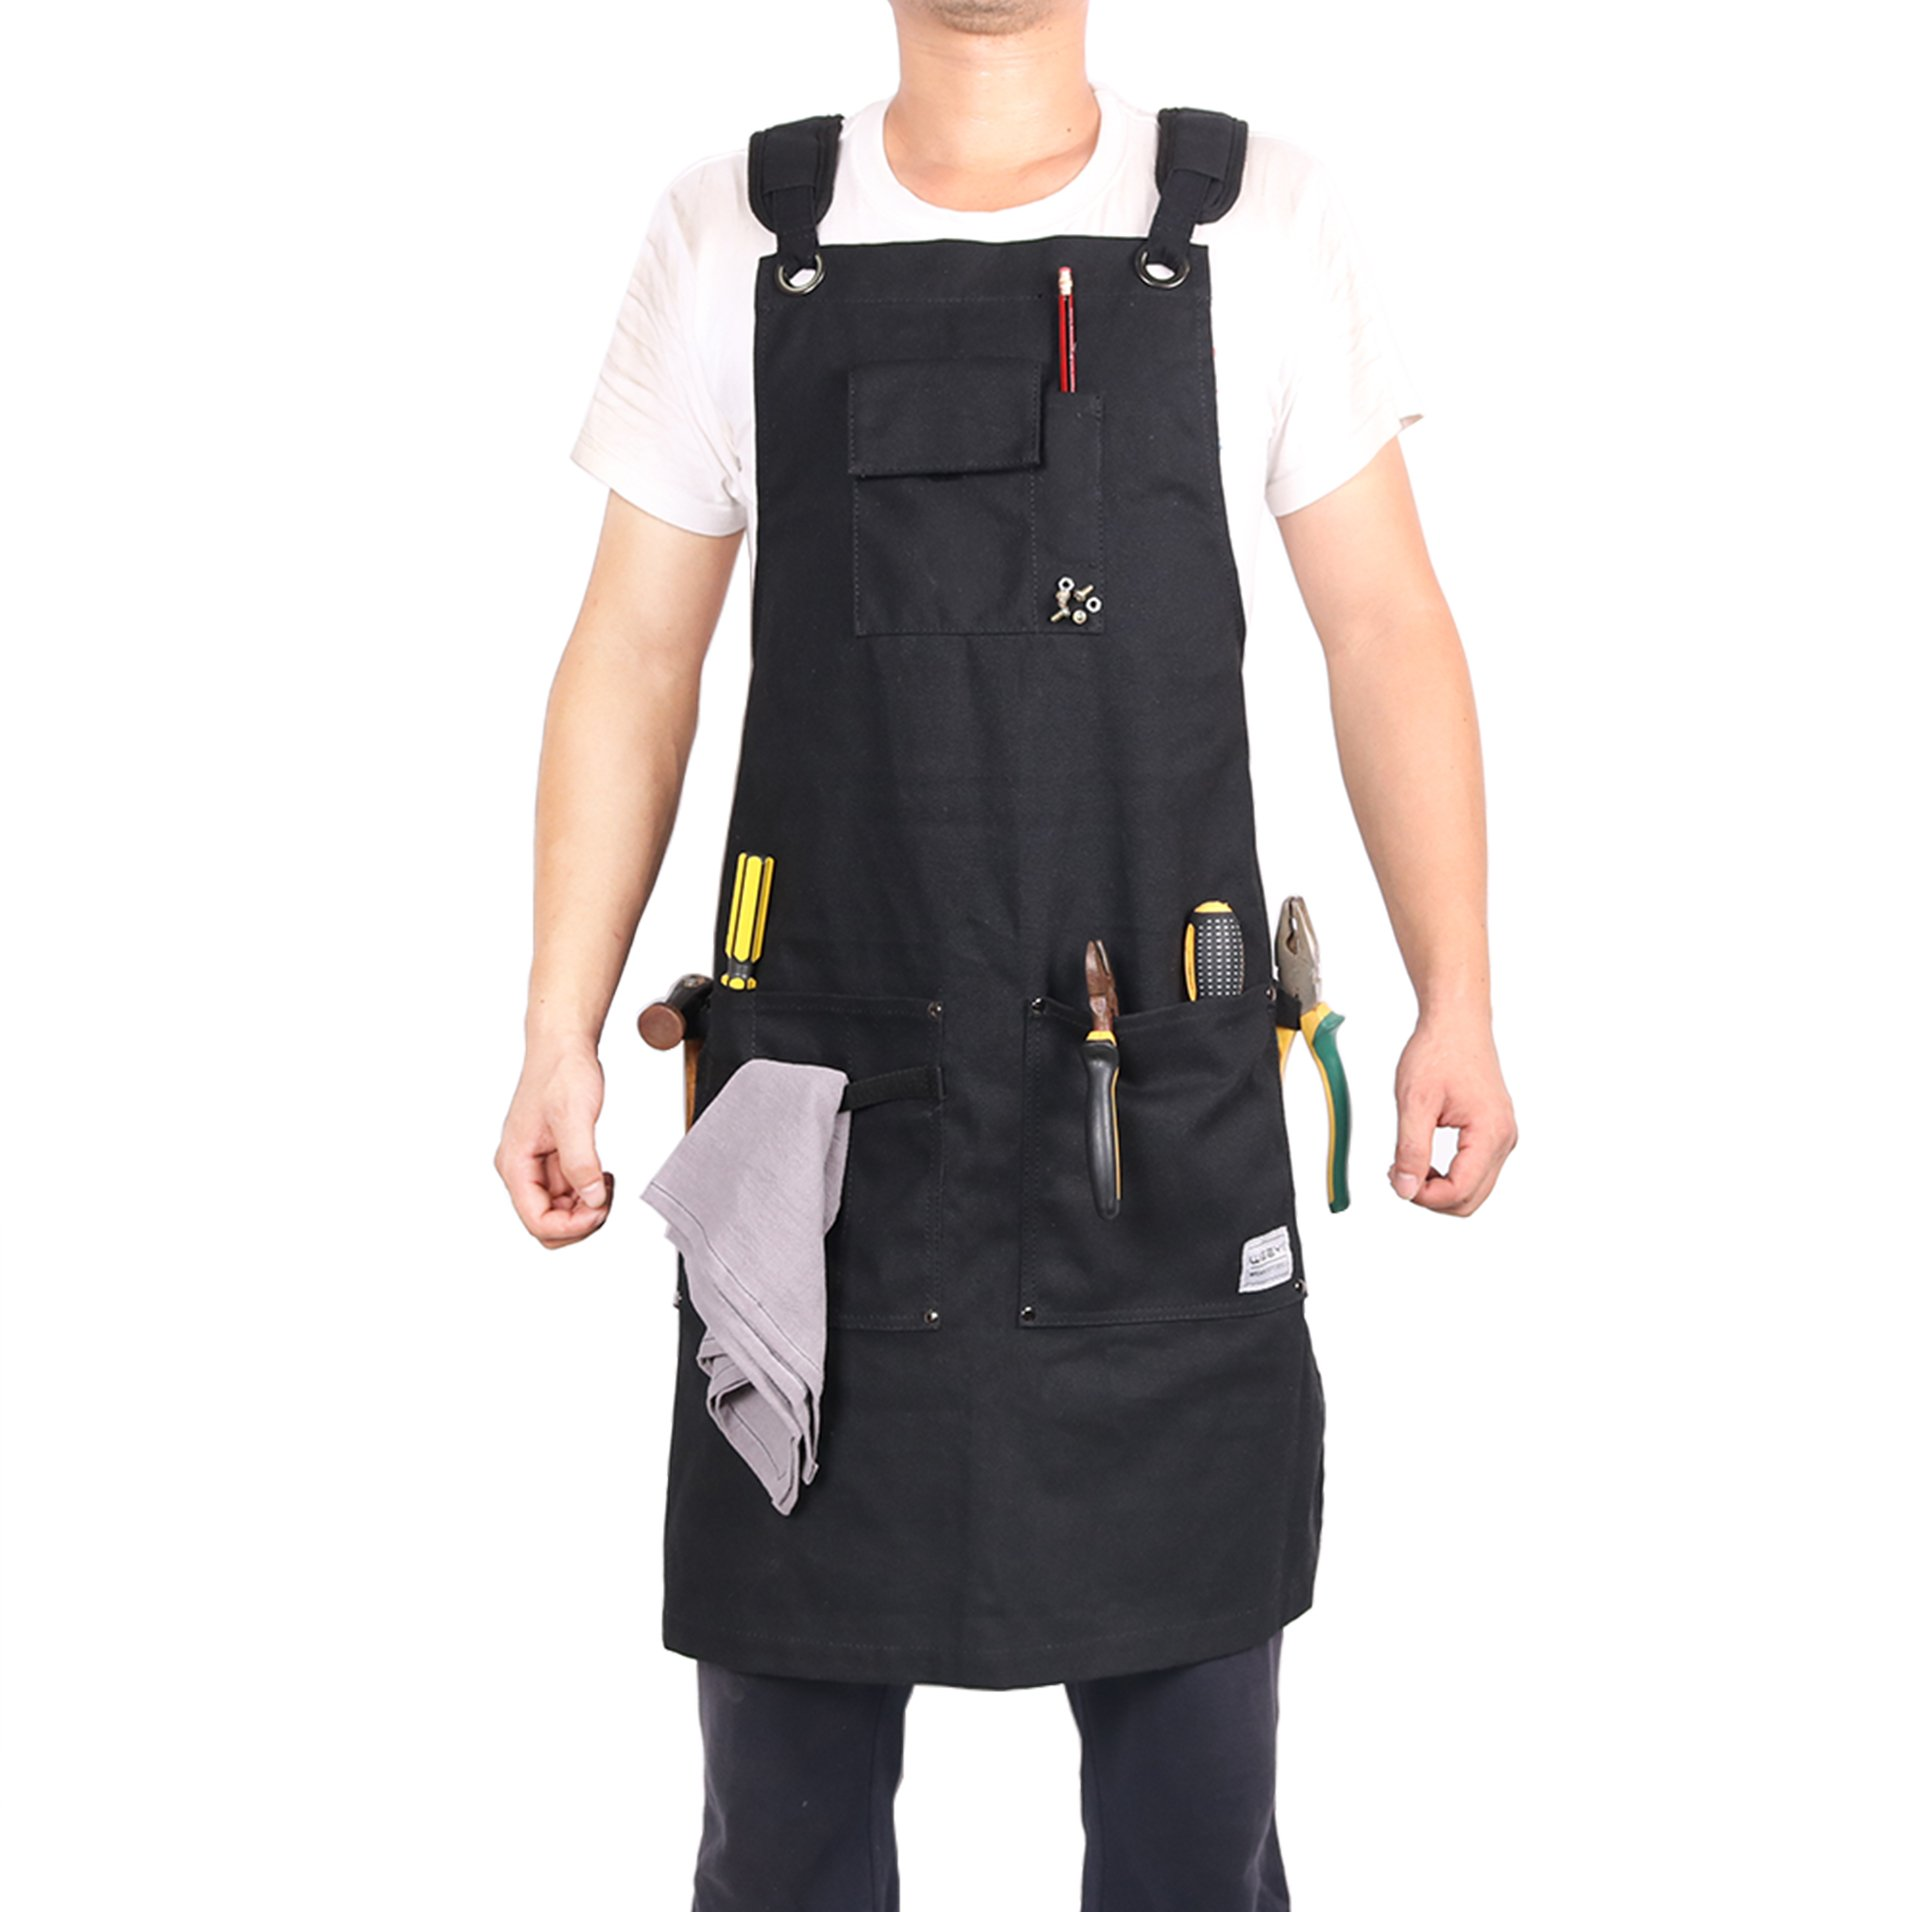 Weeyi Heavy Duty Waxed Canvas Workshop Apron With Cross Back Strap for Women and Men in Black Color Fits for Small to XXL … by Weeyi